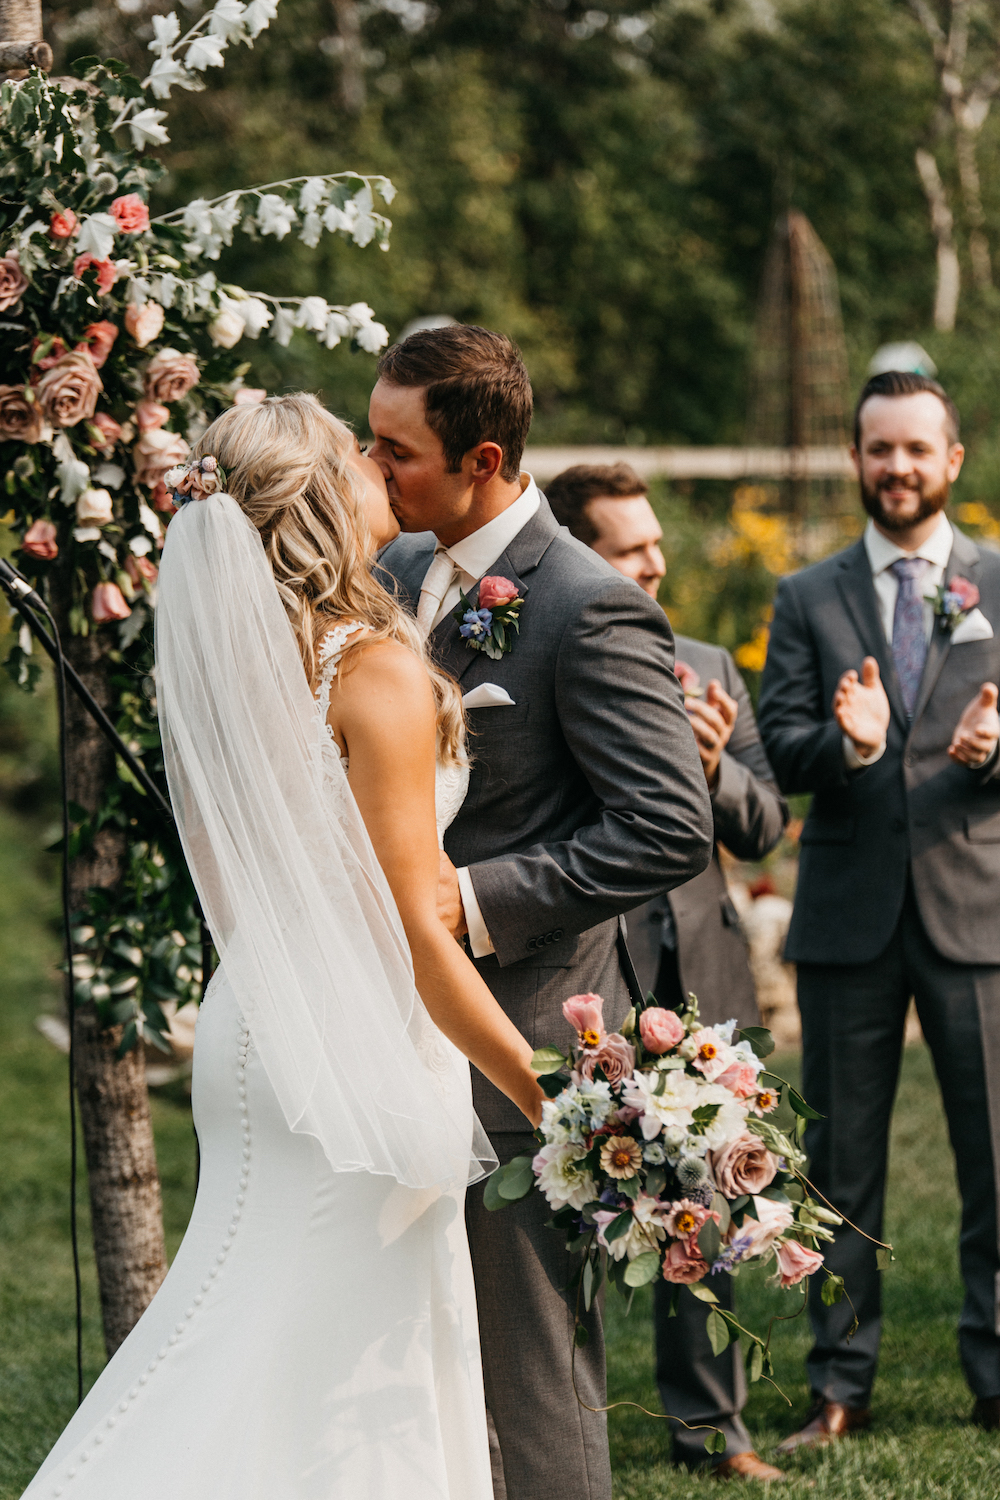 Weddings at Pineridge Hollow - Wedding Florist in Winnipeg